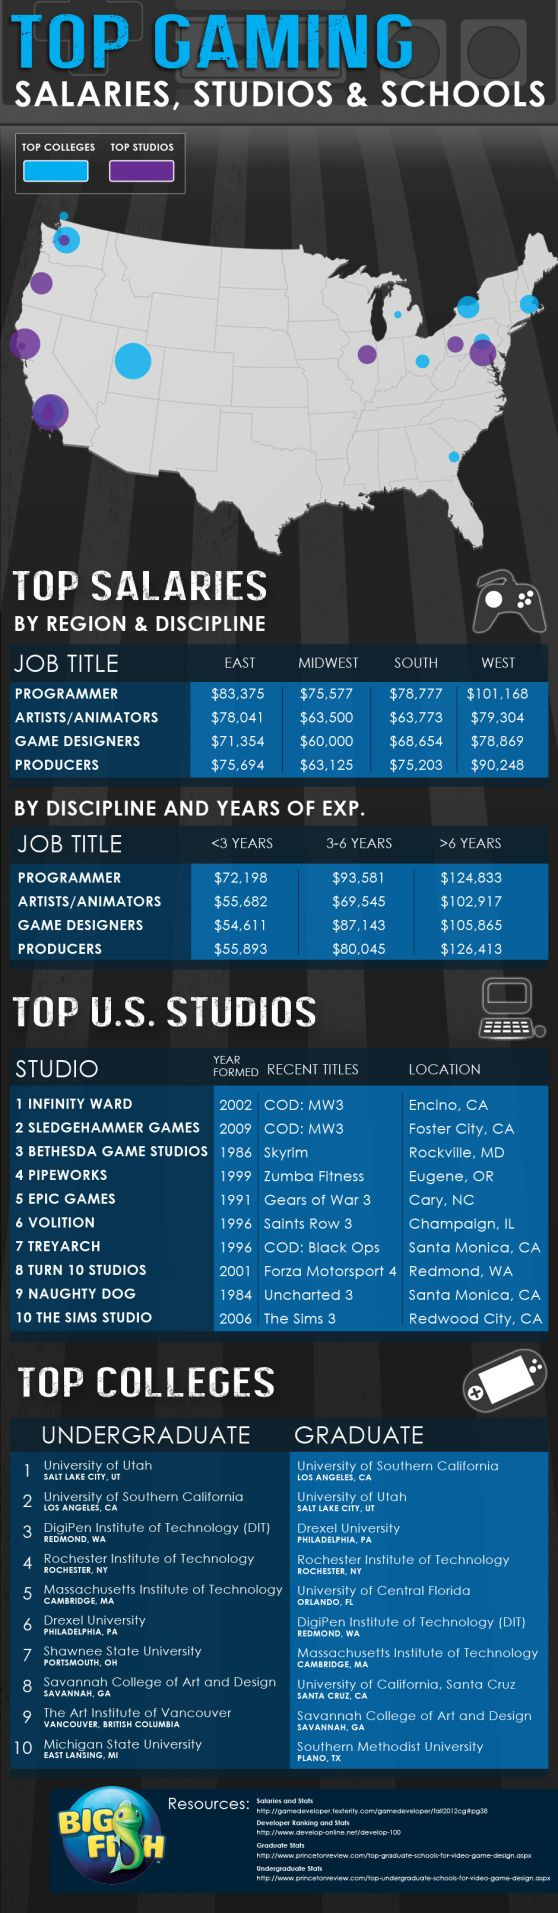 Top Colleges And Highest Salaries In Gaming Industry Infographic